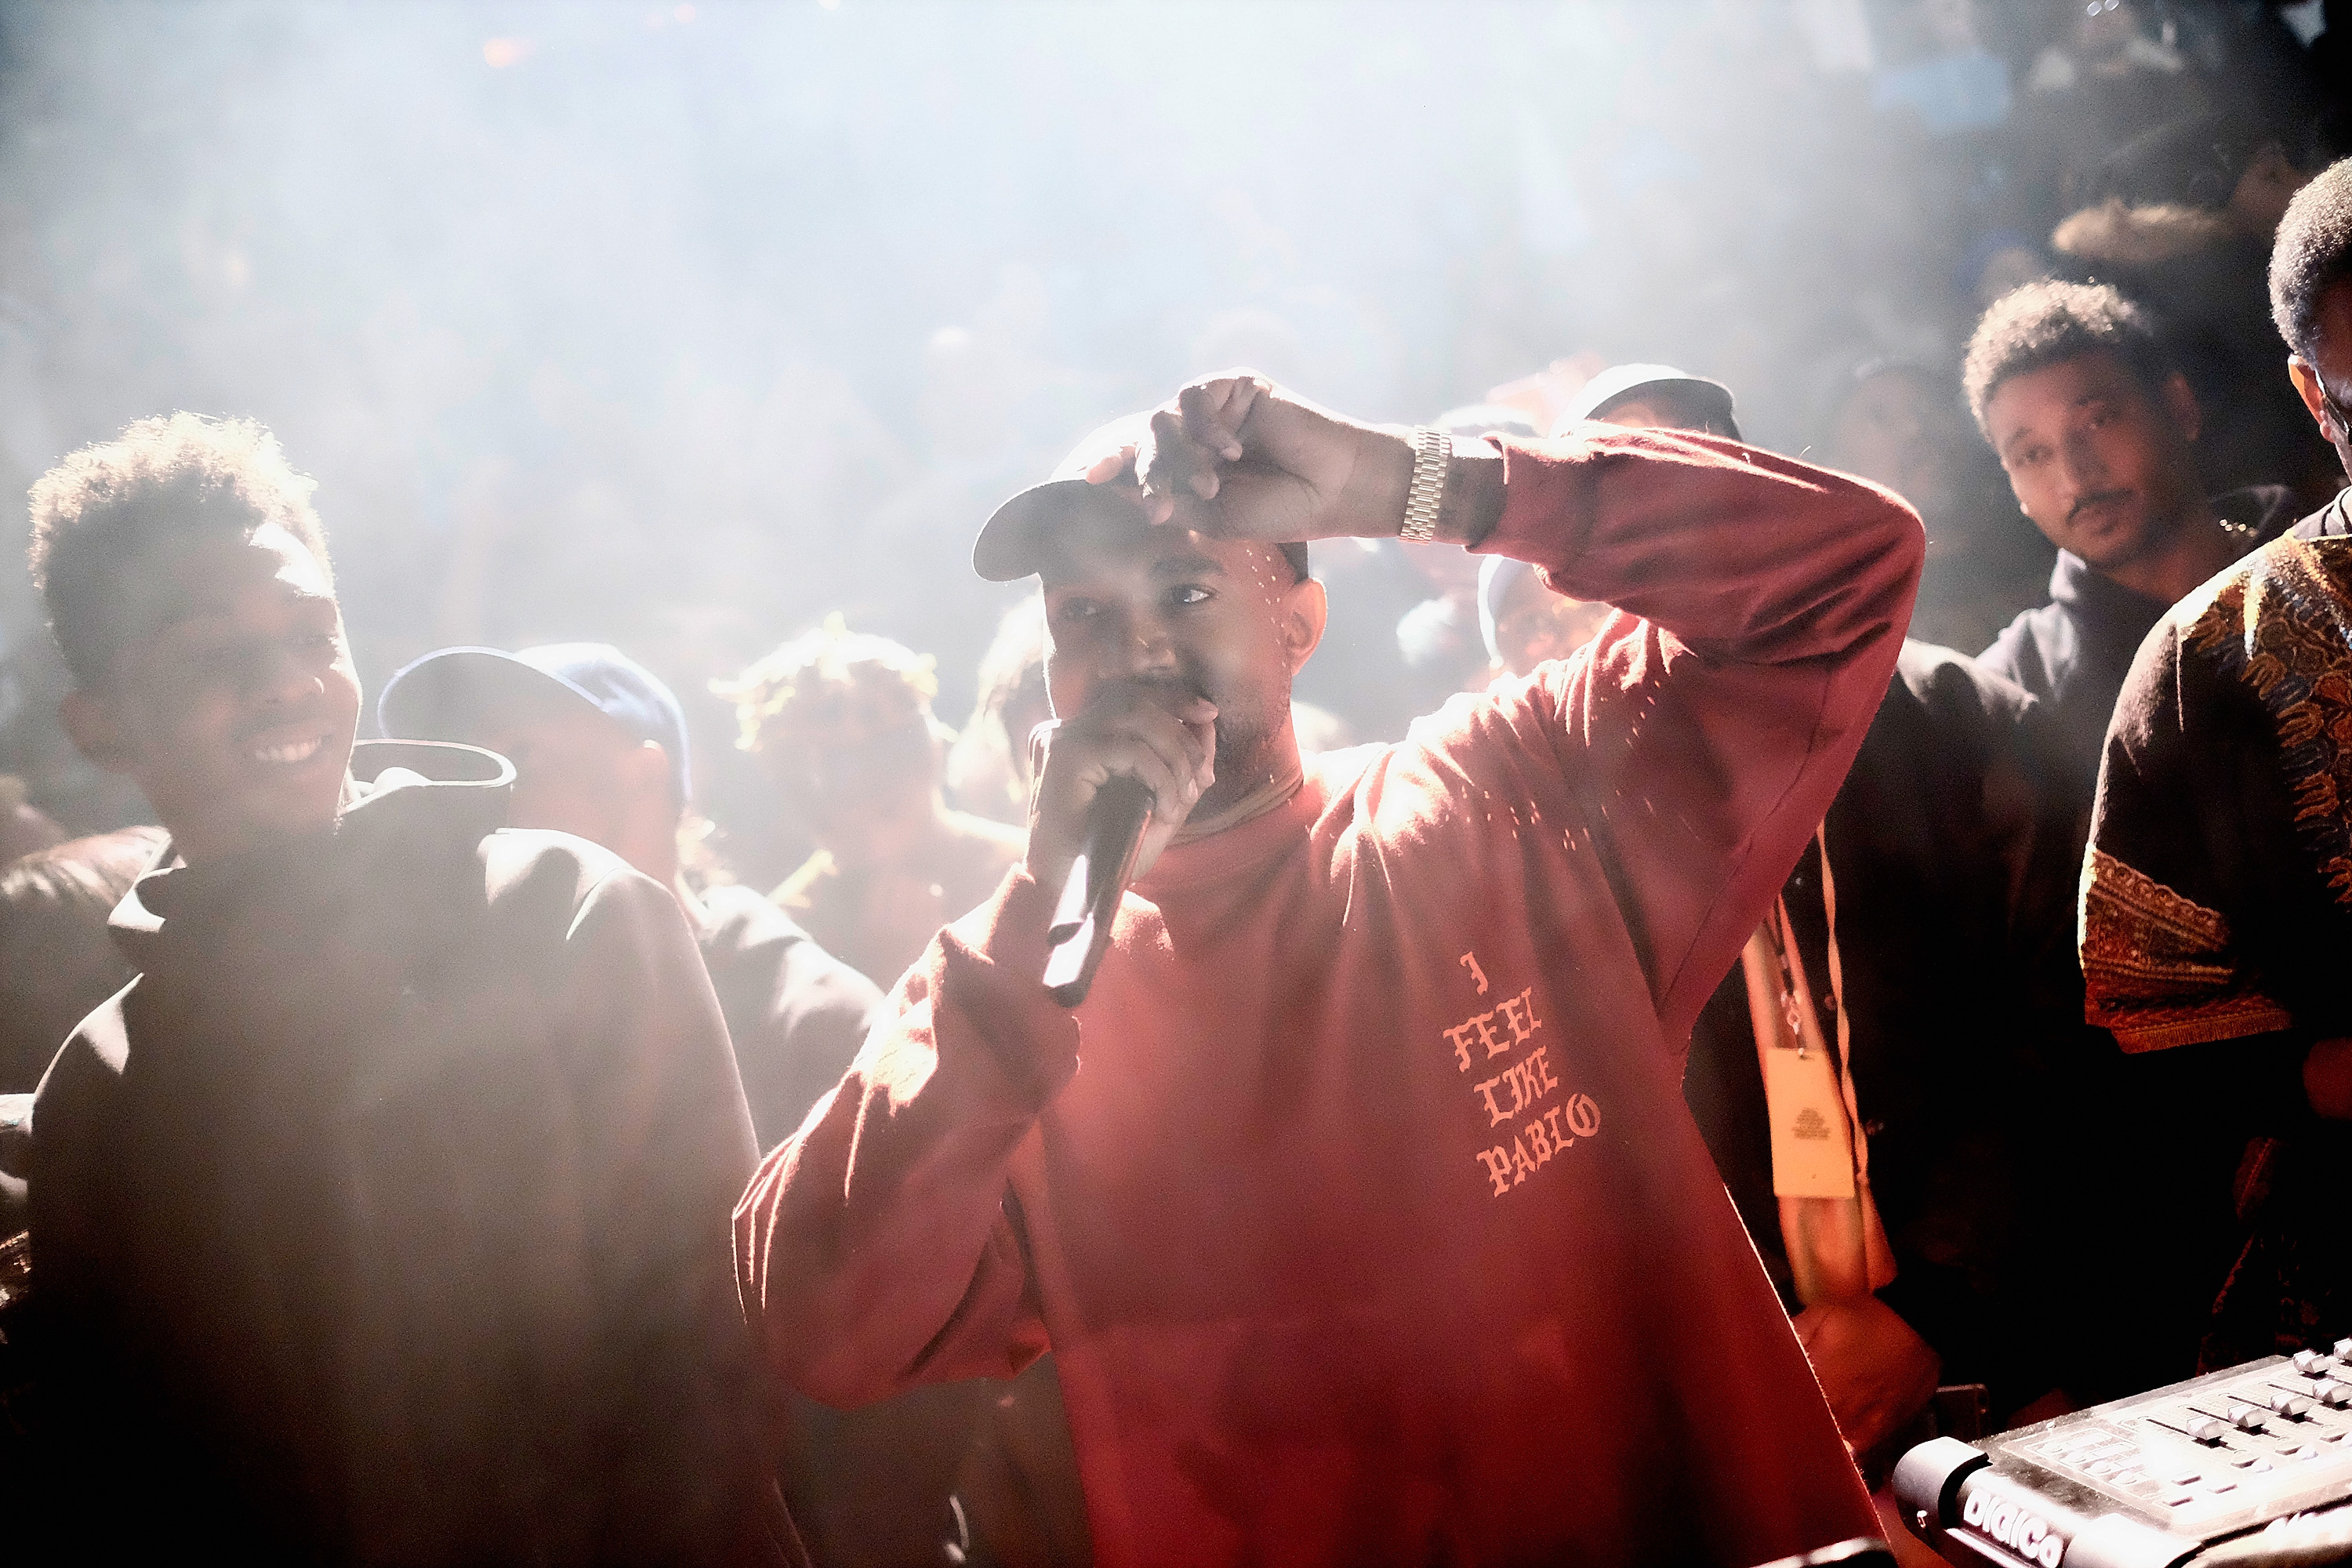 Kanye West performs during Kanye West Yeezy Season 3 on Feb. 11, 2016, in New York City